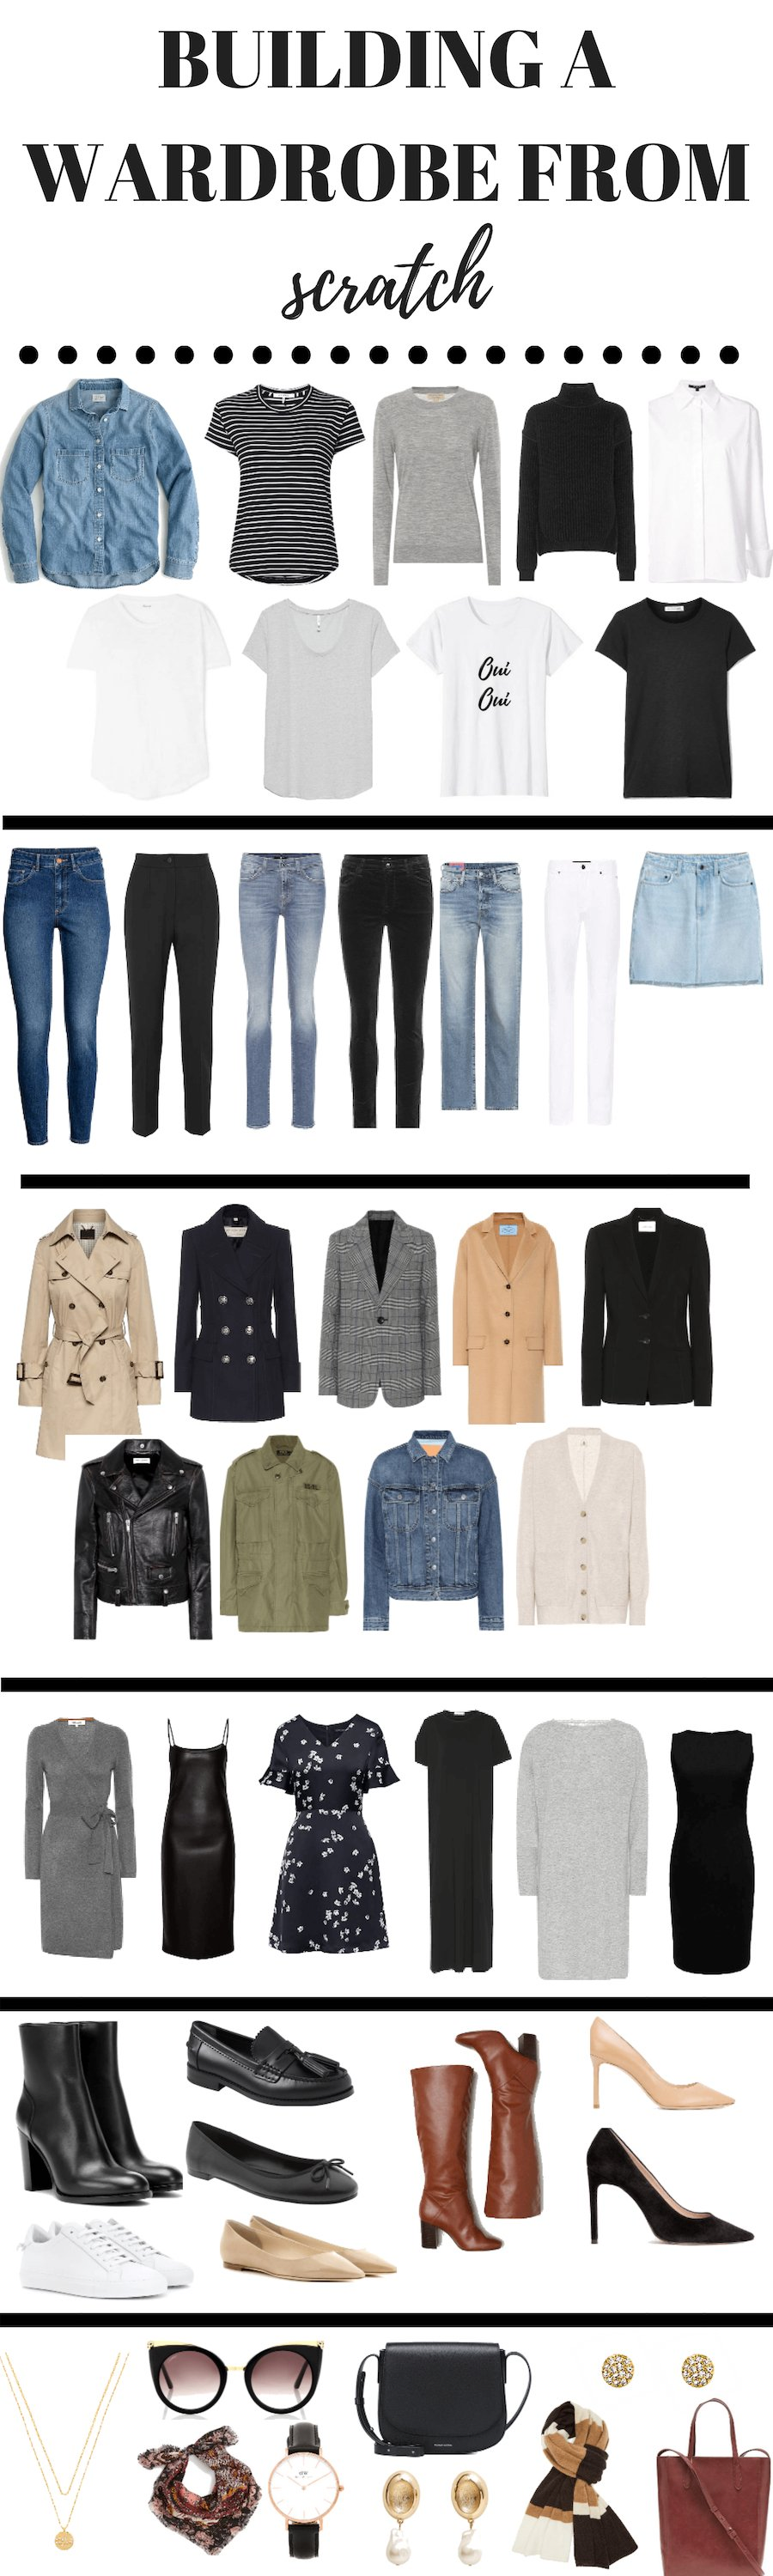 e6f27b5ad22fc Here s how to build a wardrobe from scratch. Your capsule minimalist  wardrobe is just one